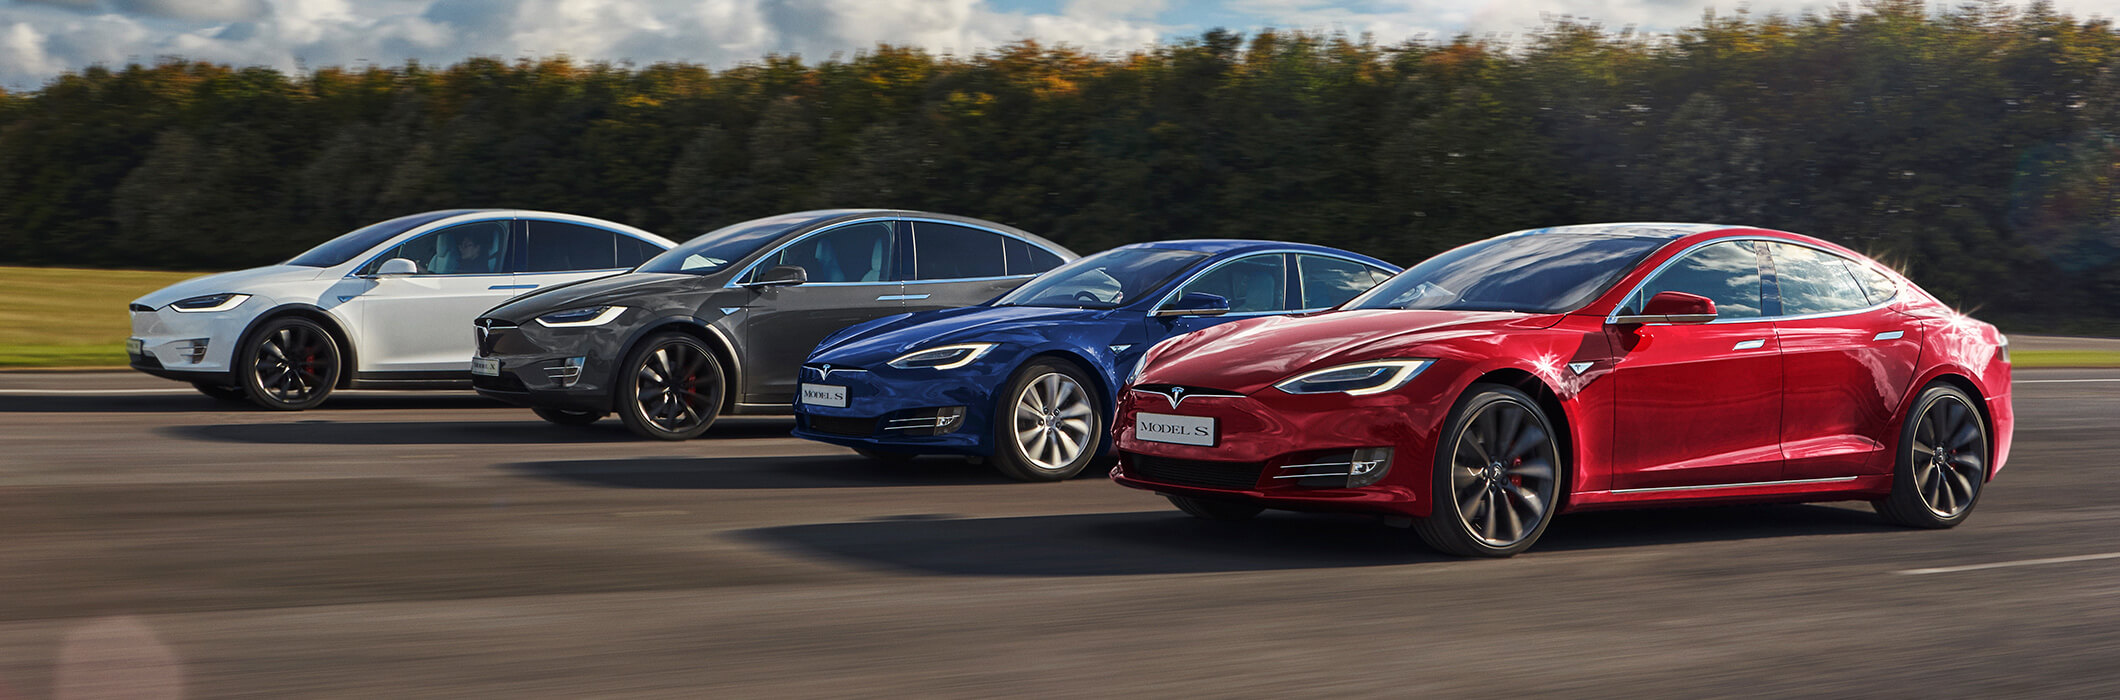 Tesla holds its value at 2 times better than average gasoline car, study says - Electrek